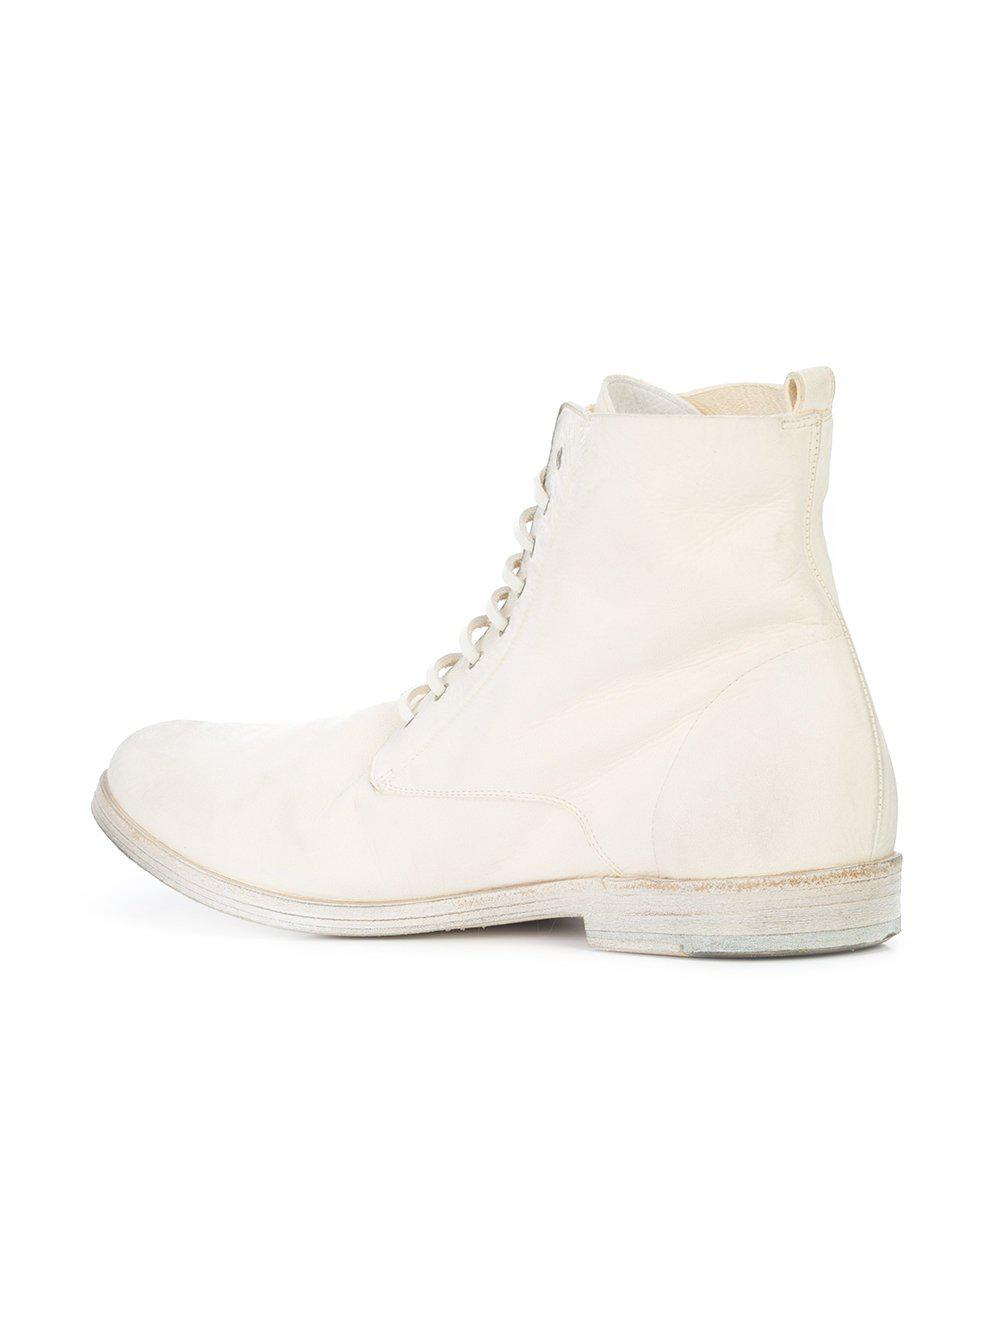 d4230039e46 Lyst - Marsèll Off White Deer Leather Lista Ankle Boot in White